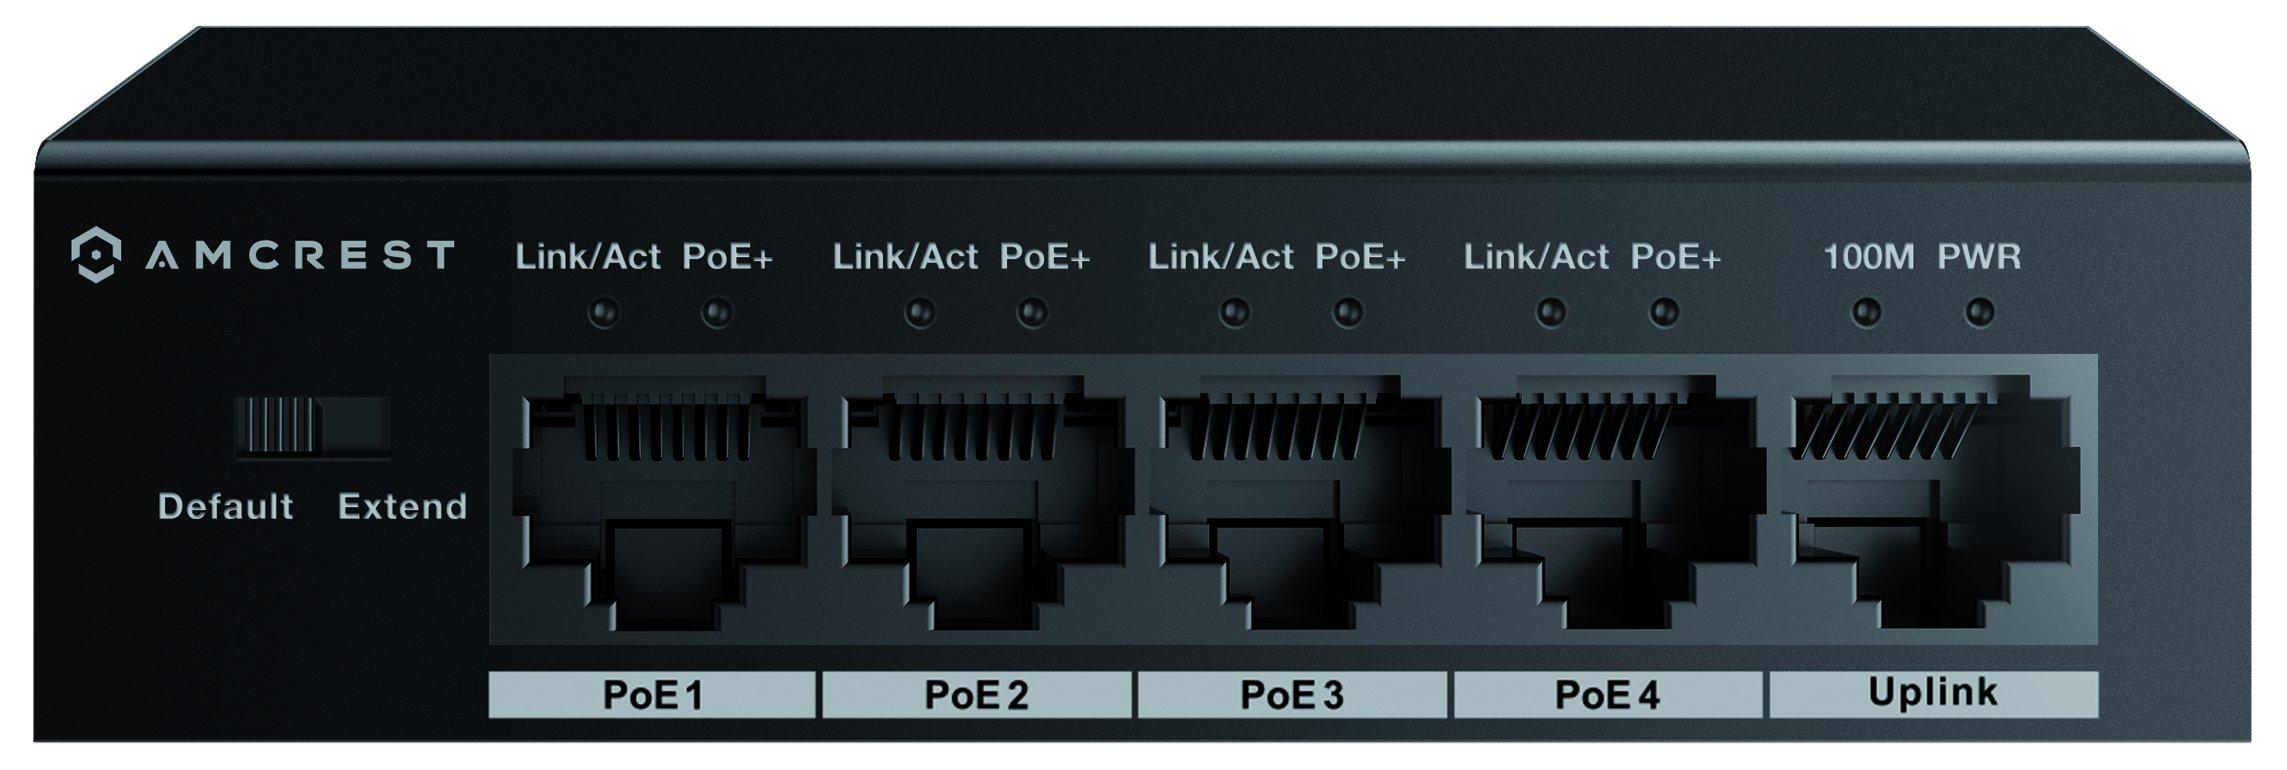 Amcrest 5-Port POE+ Switch with Metal Housing, 4-Ports POE+ Power Over Ethernet Plus 802.3at 58w (AMPS5E4P-AT-58) by Amcrest (Image #2)